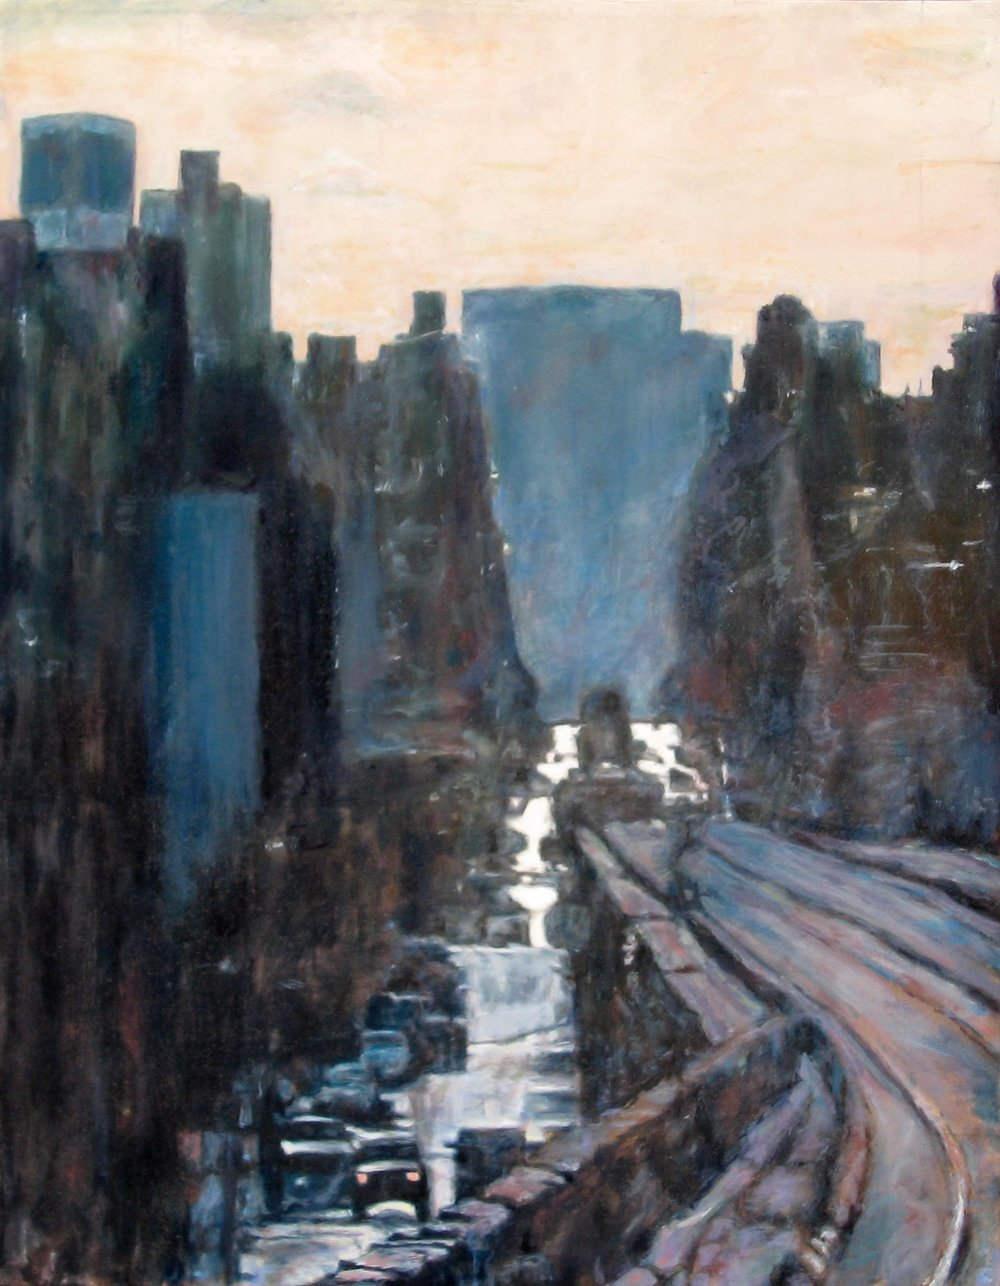 125thSt_oil on canvas_22x28.jpg